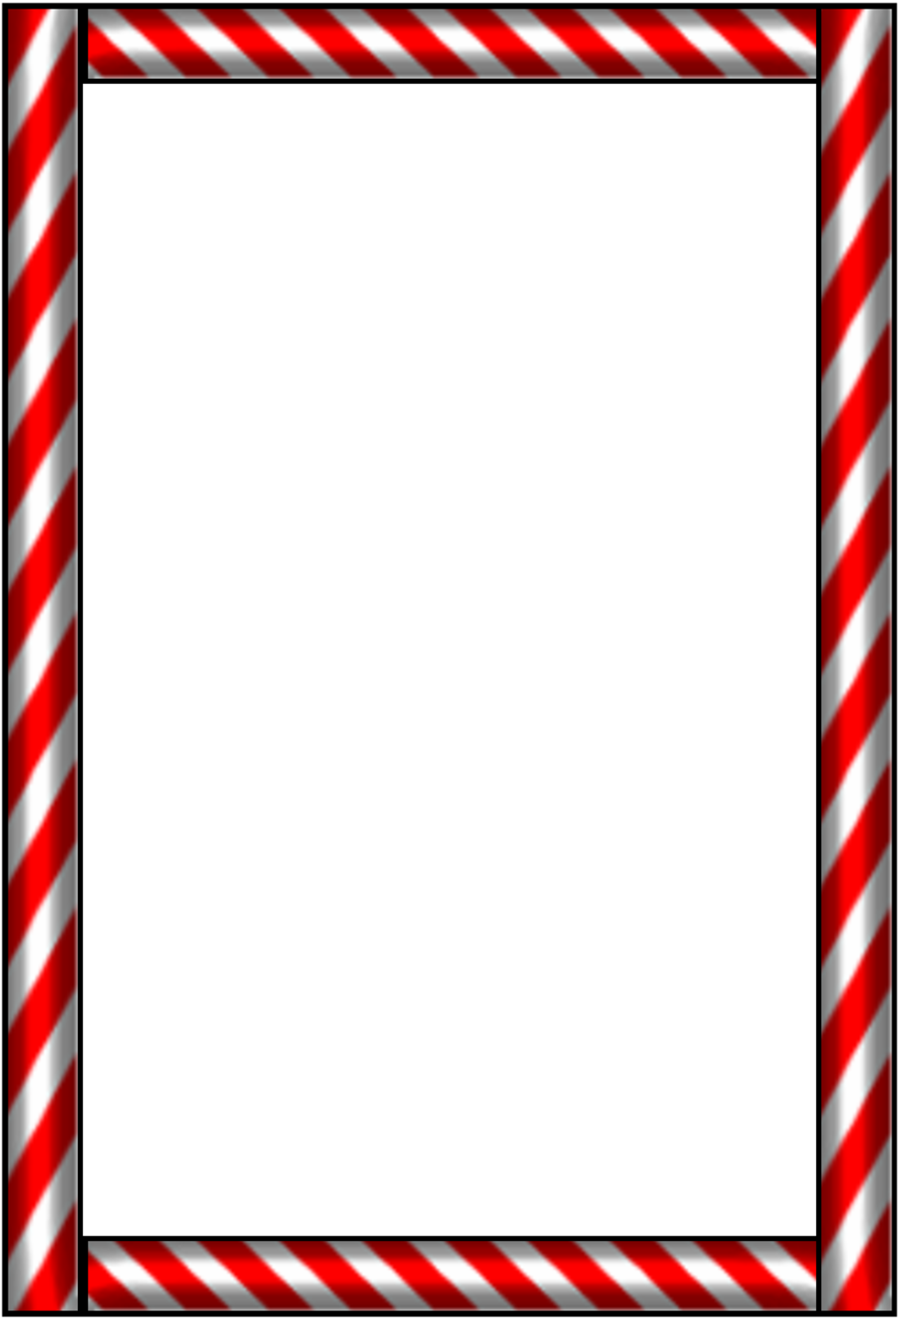 Candy cane clipart frame